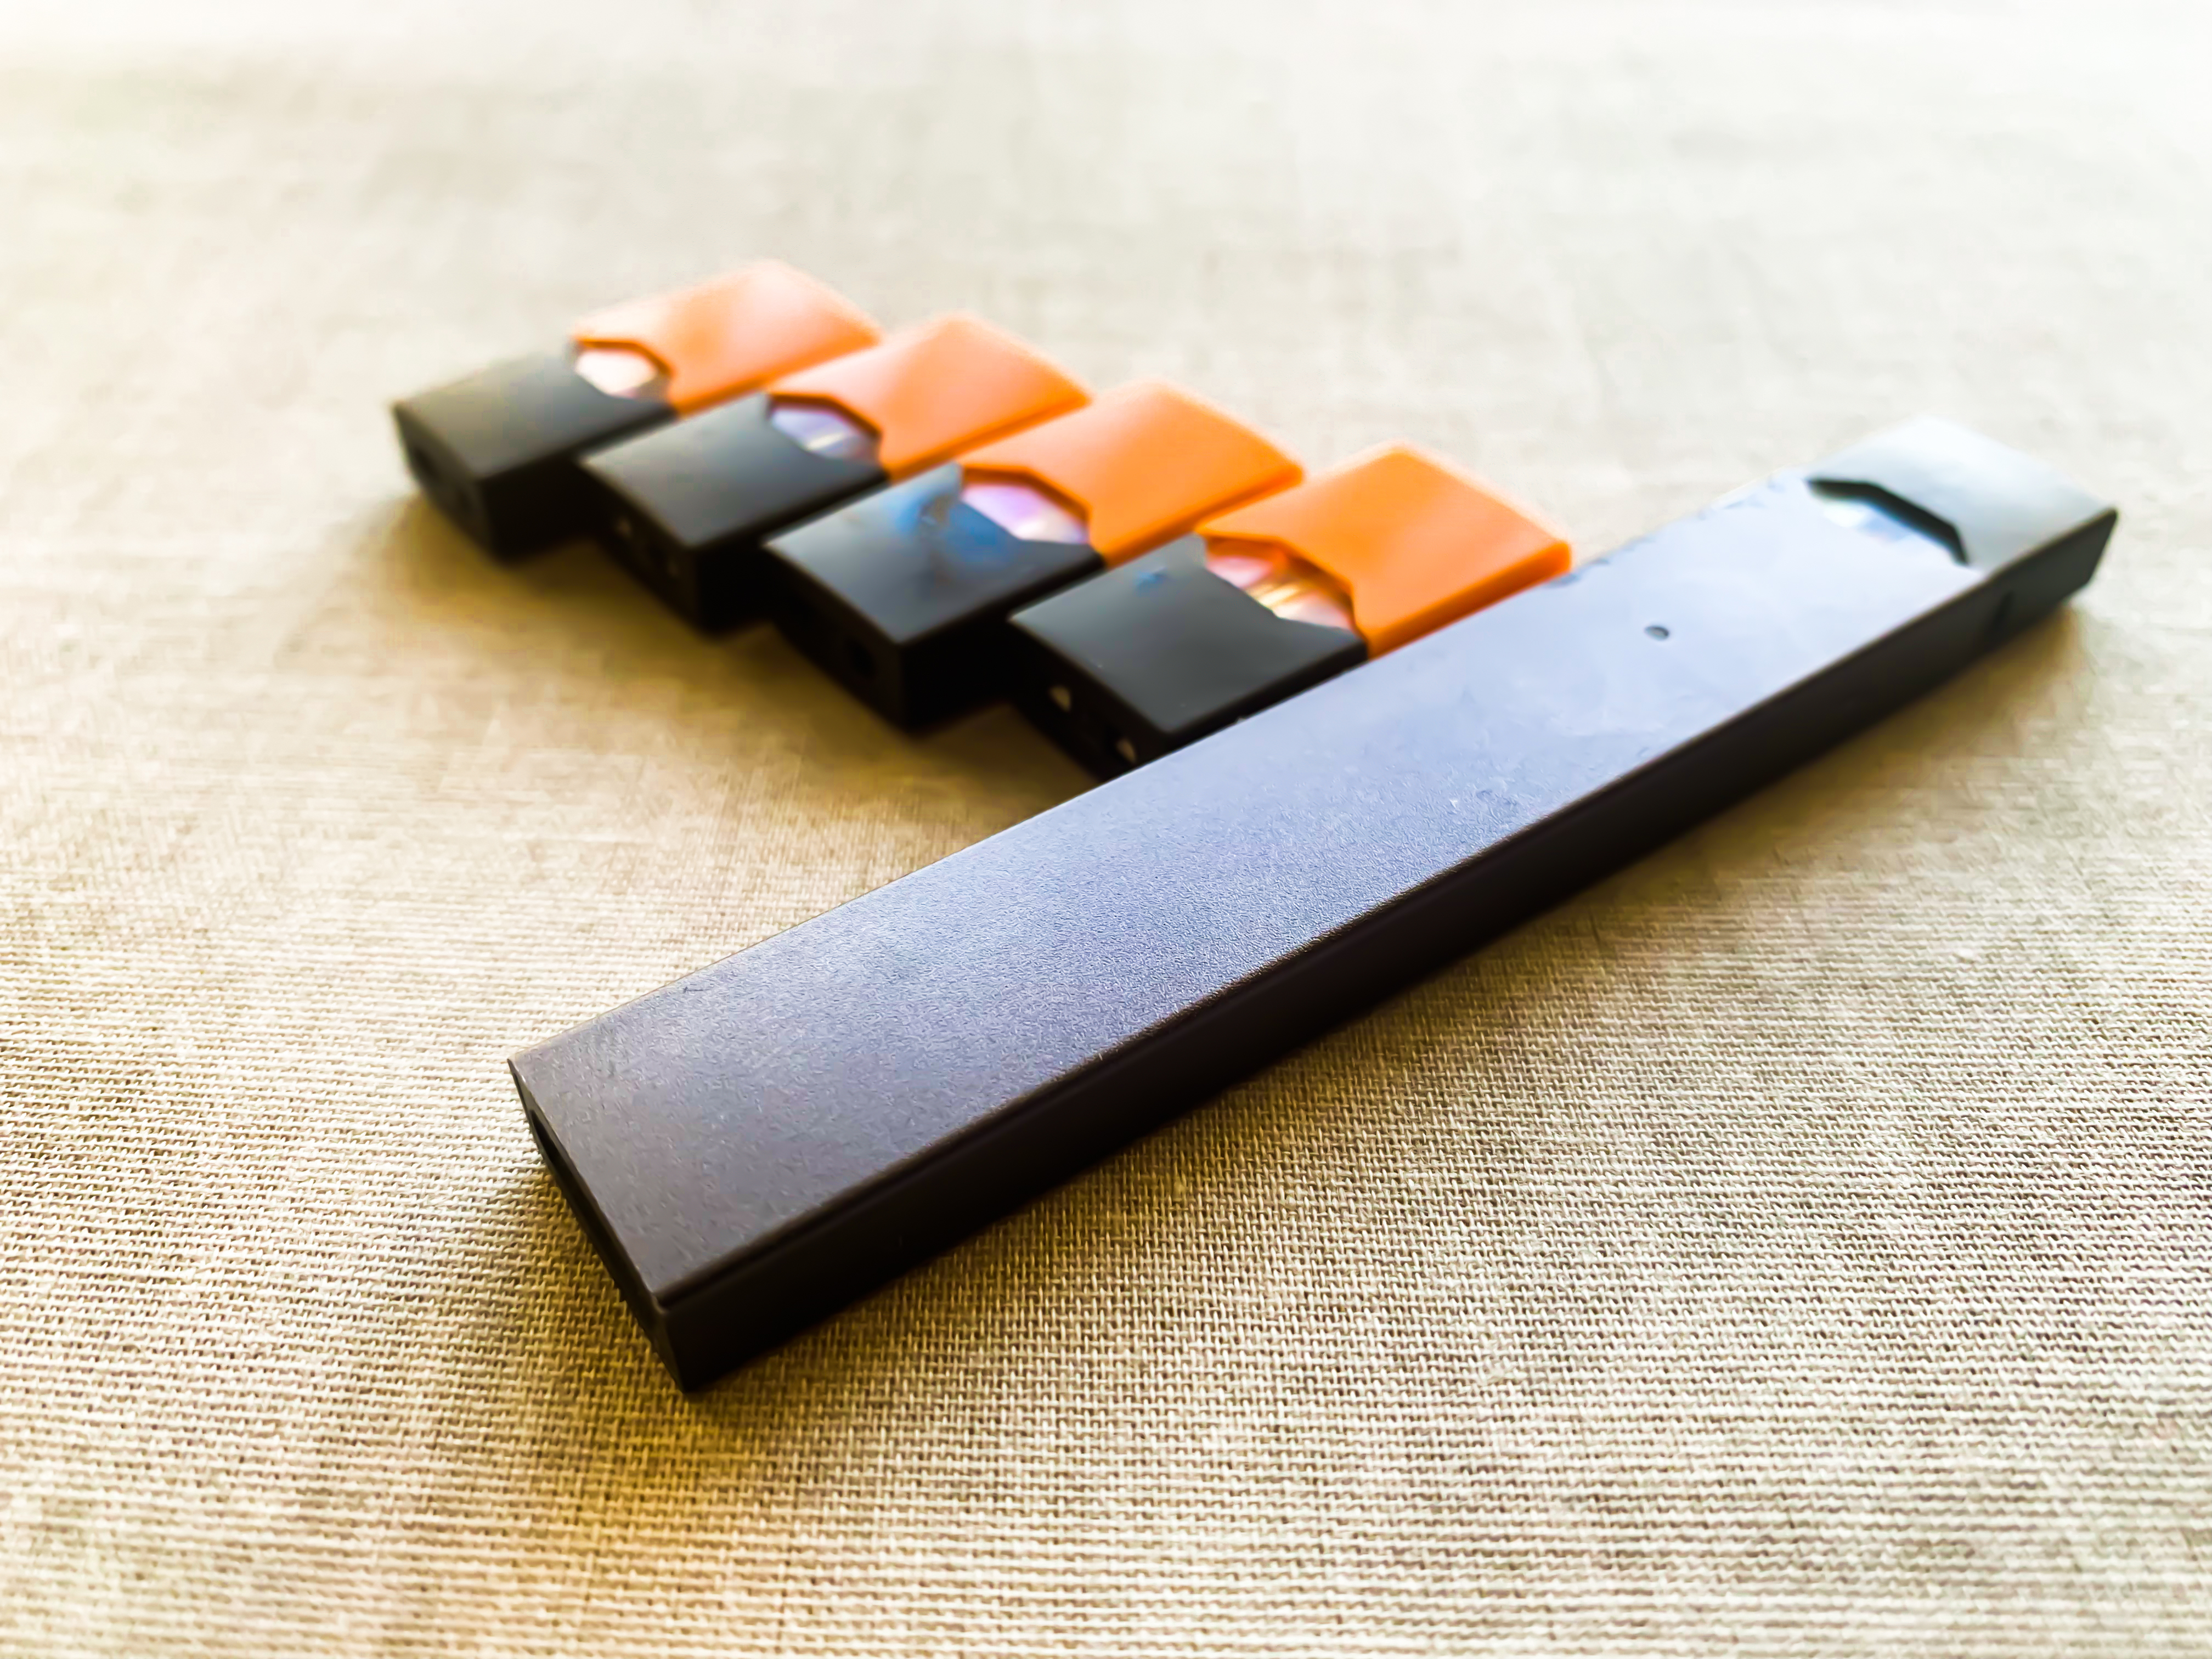 Juul's mint flavored pods saw a surge in popularity after the company stopped selling its sweet flavors like mango, seen here. (Shutterstock/ggTravelDiary)